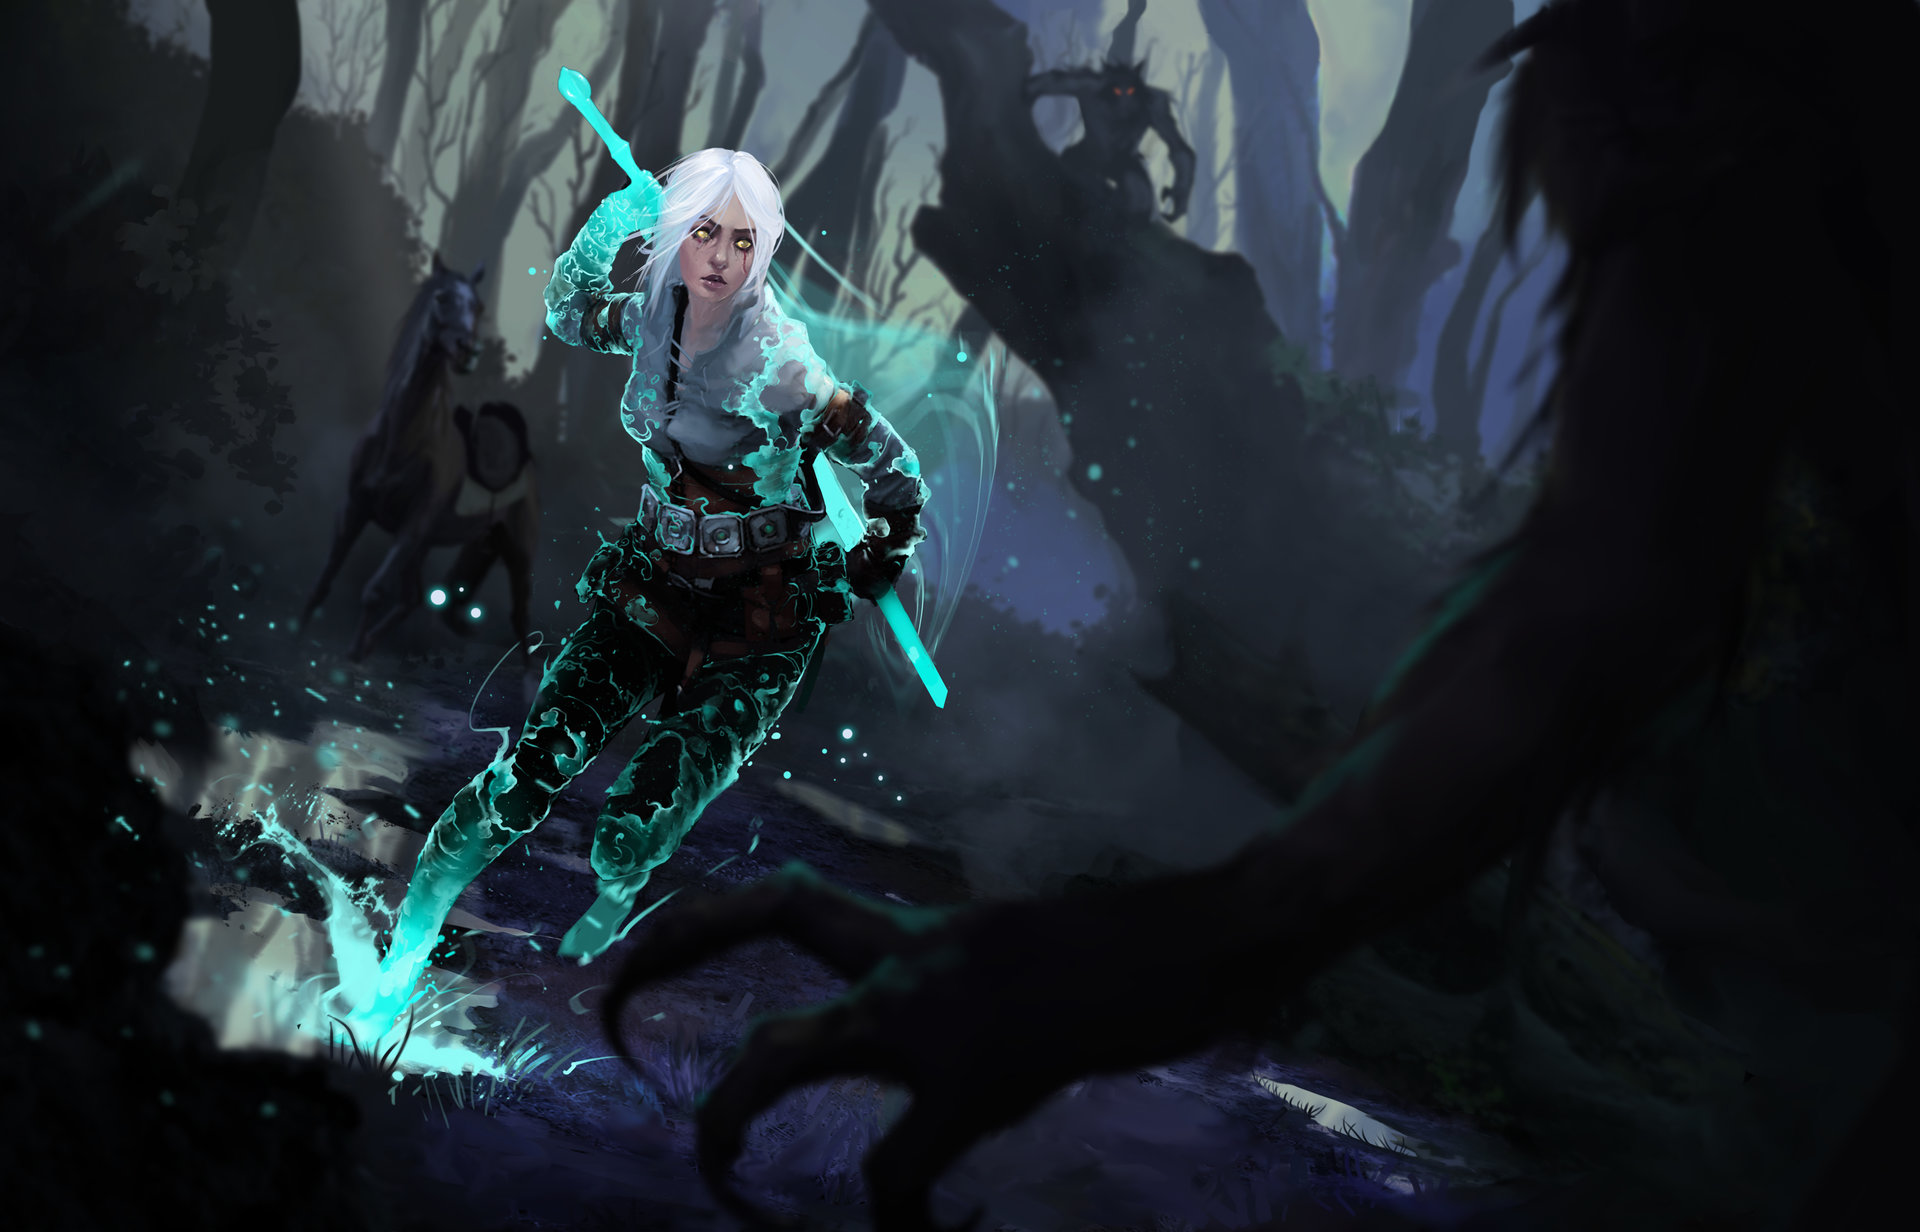 The Witcher 3 concept art picture Cirilla Цири источник